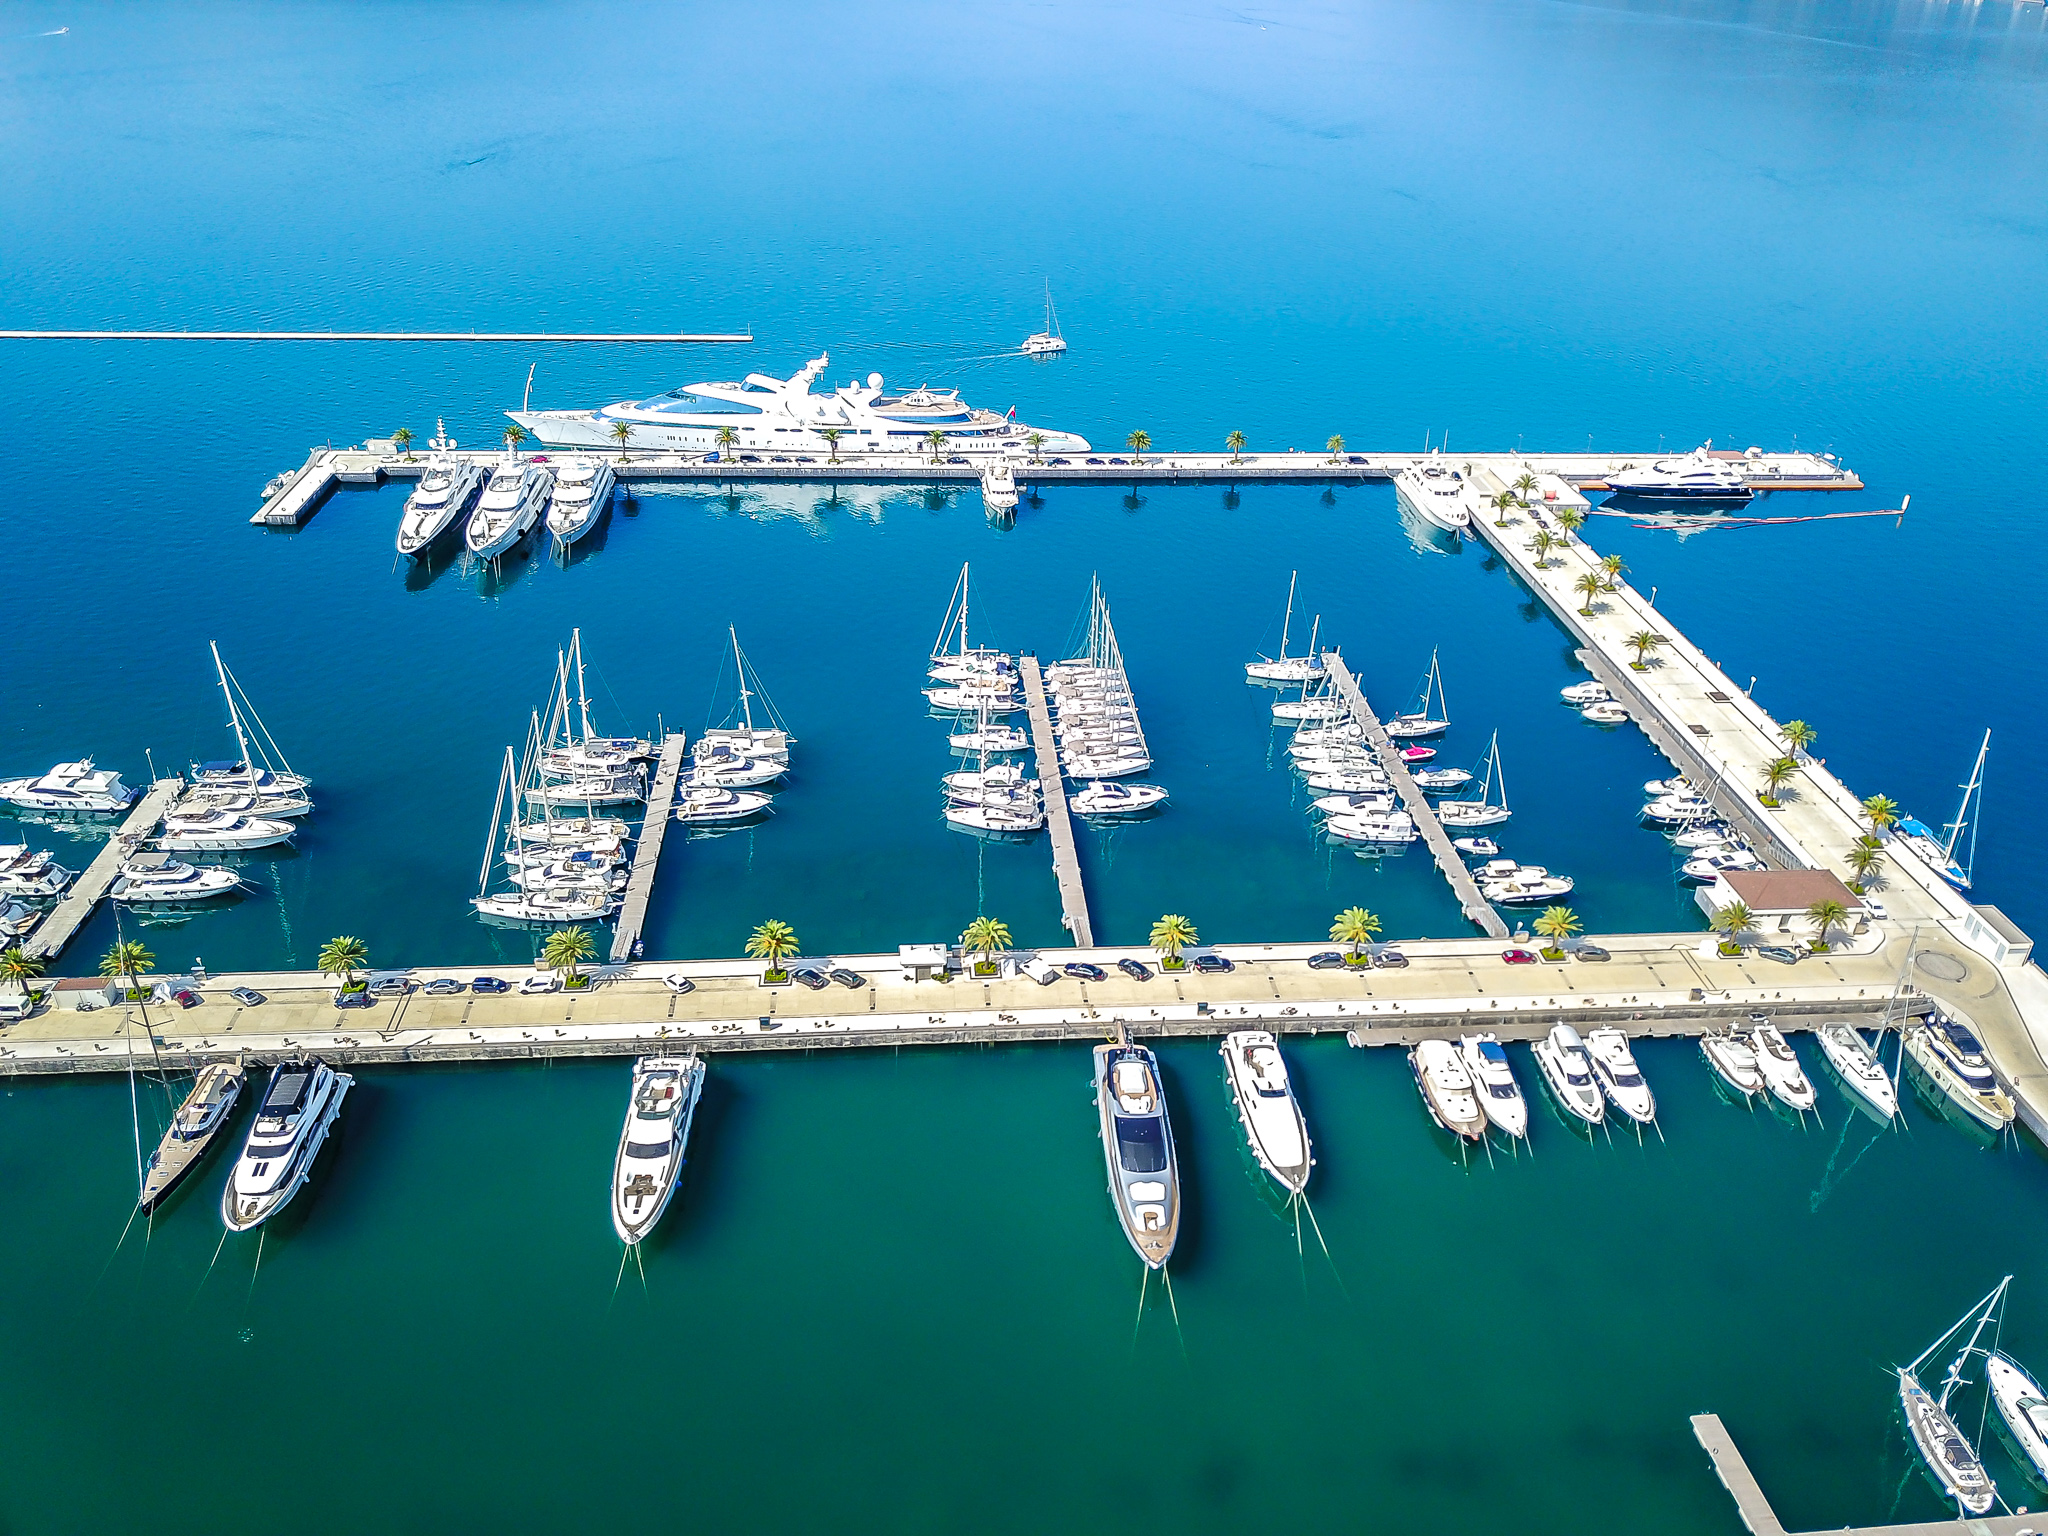 THE MARINA AT PORTO MONTENEGRO